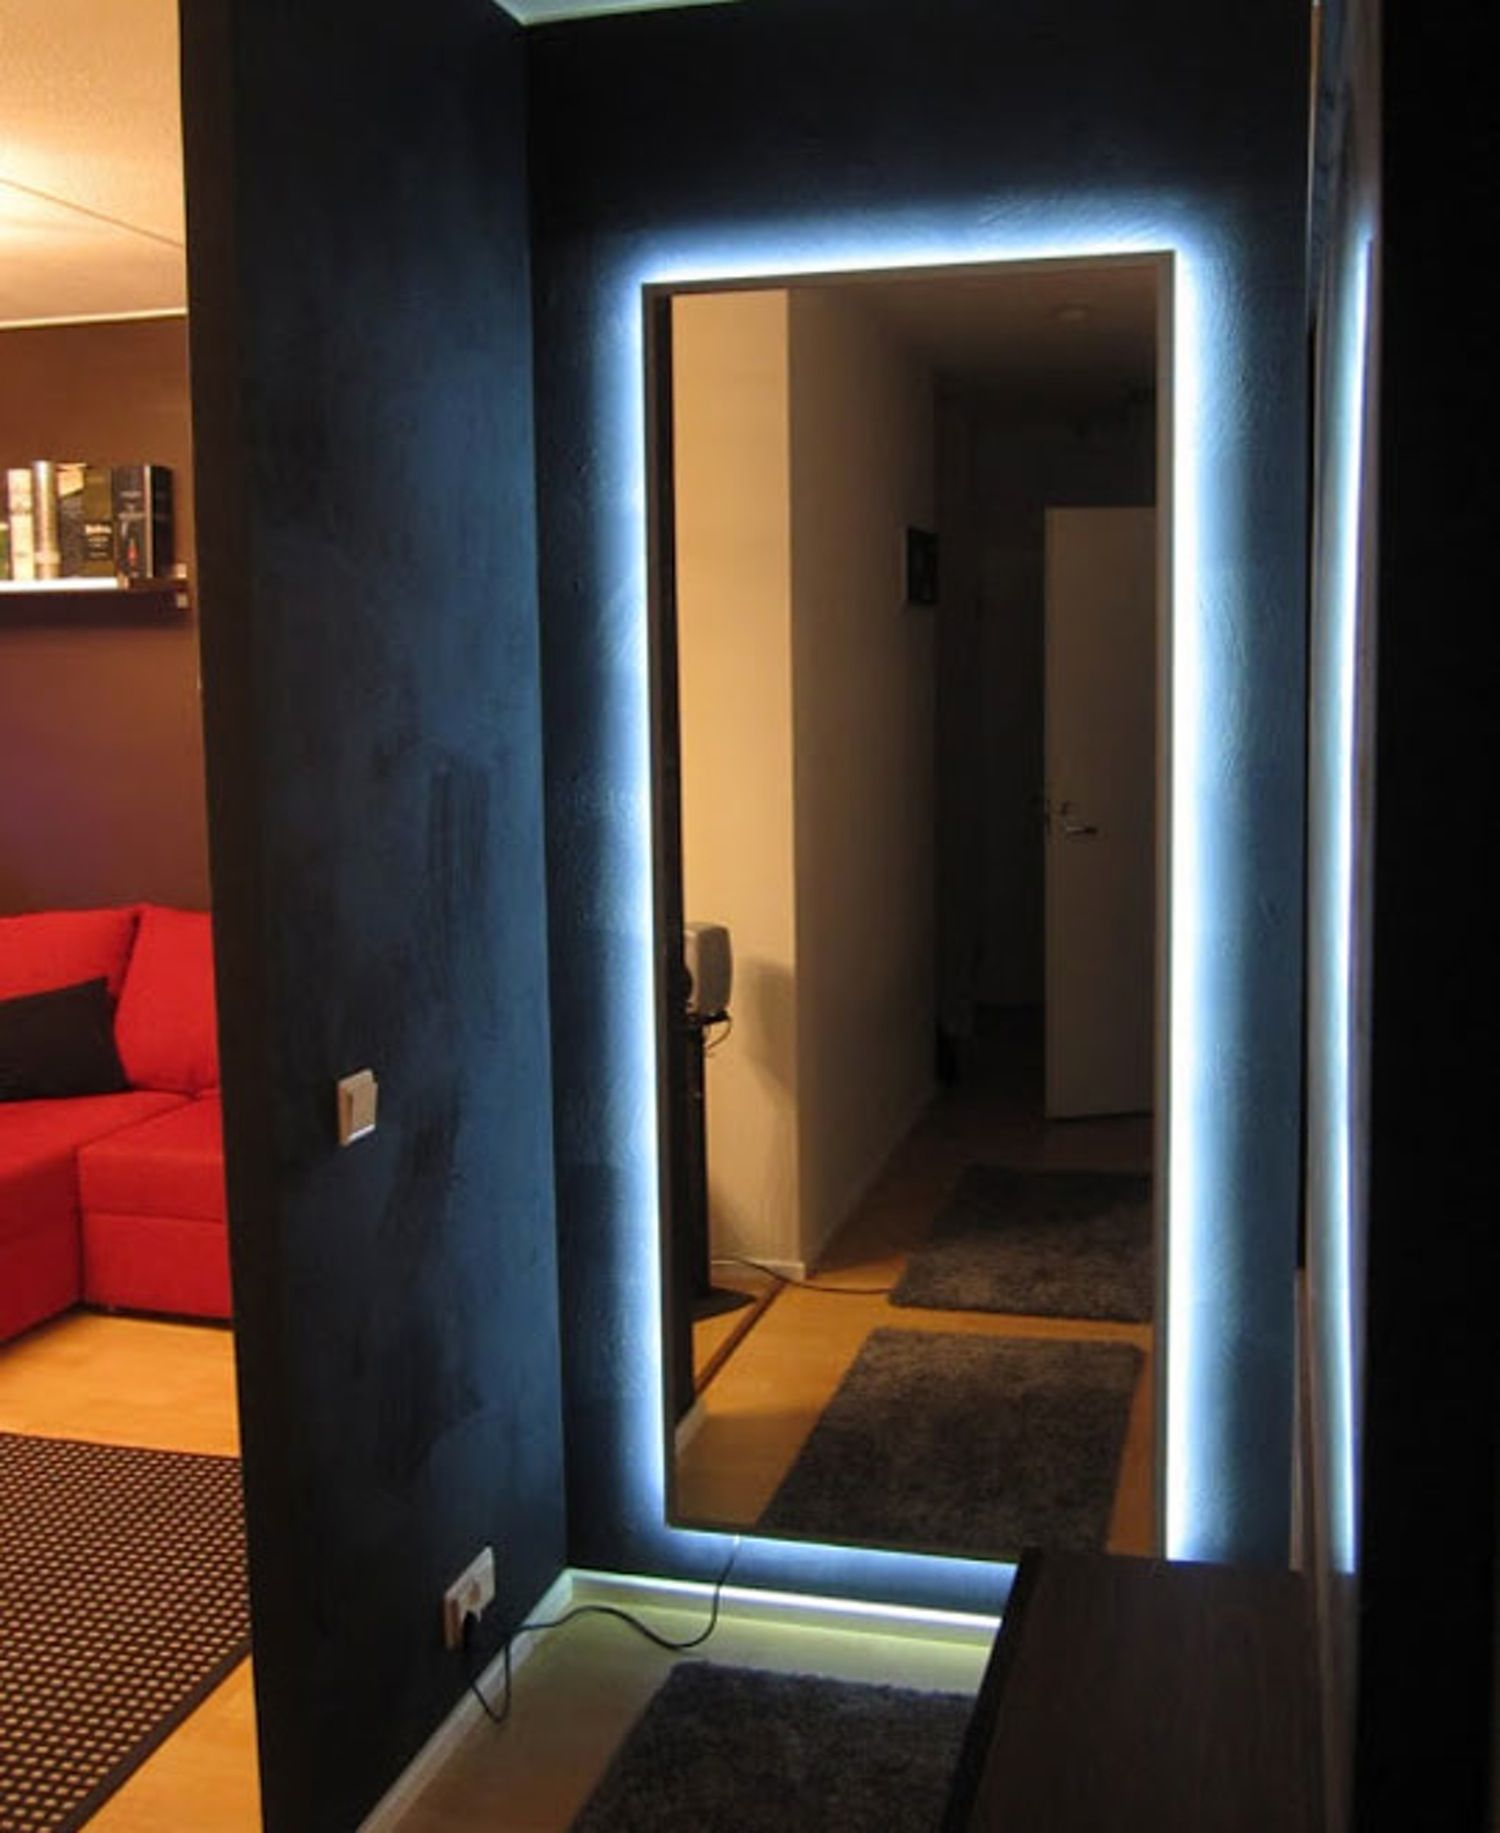 Ikea Mirror Transformed With Nightclub Chic Led Lighting Dorm Room